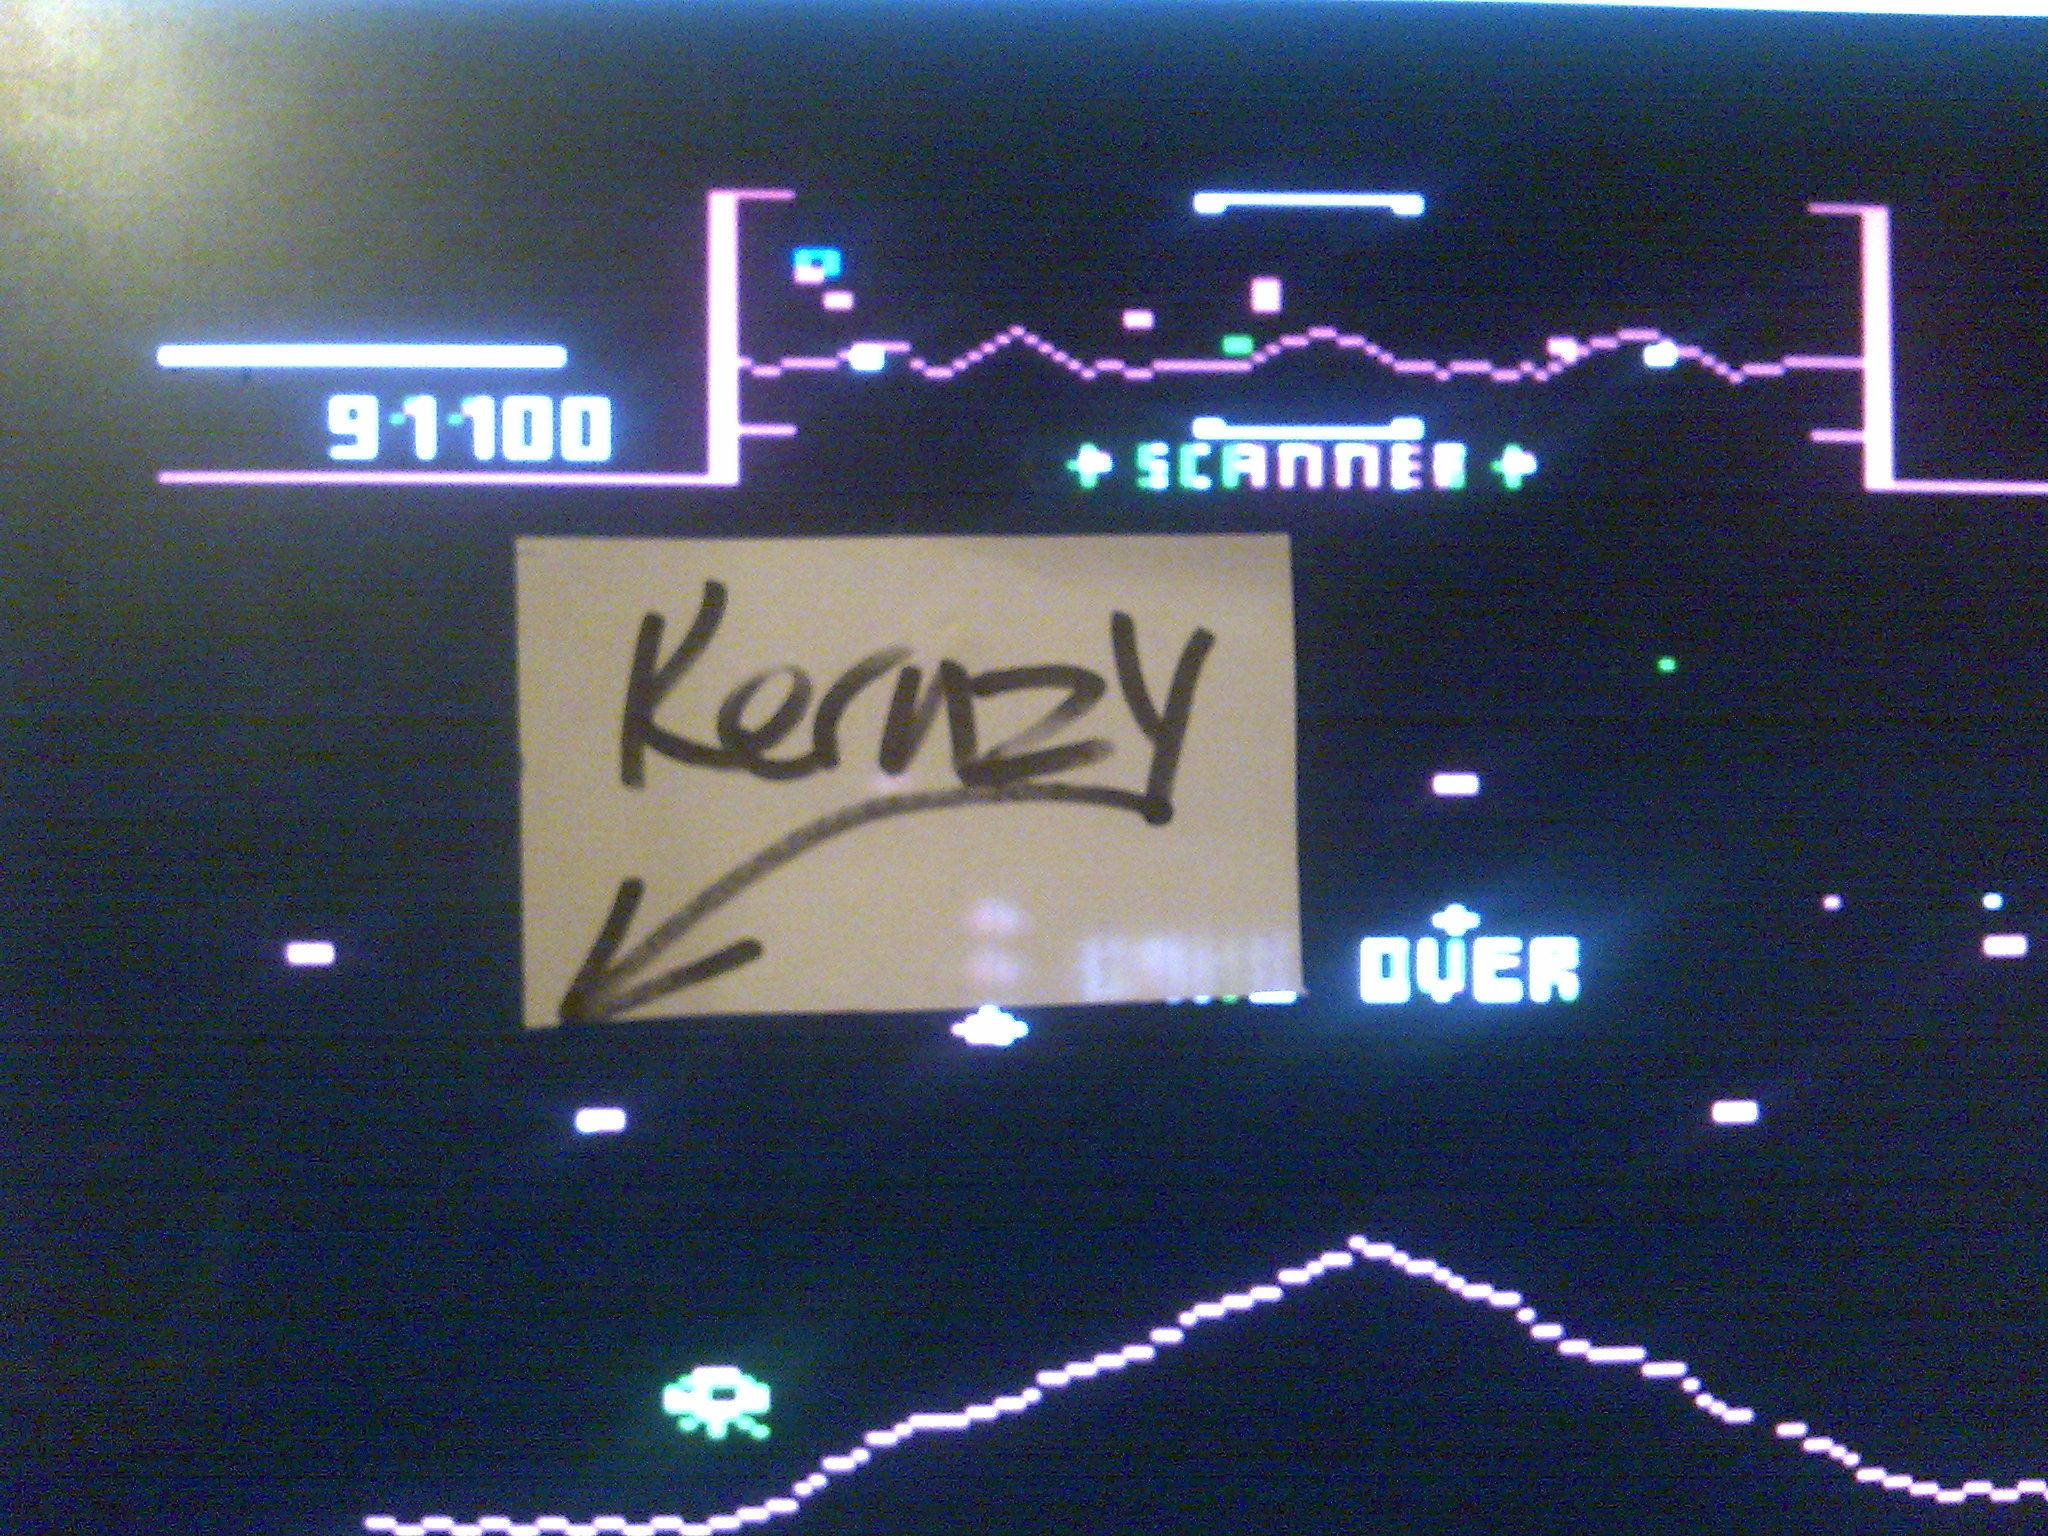 kernzy: Stargate [Default: Difficulty 3/3 Ships] (Atari 400/800/XL/XE Emulated) 91,100 points on 2014-10-13 21:12:58